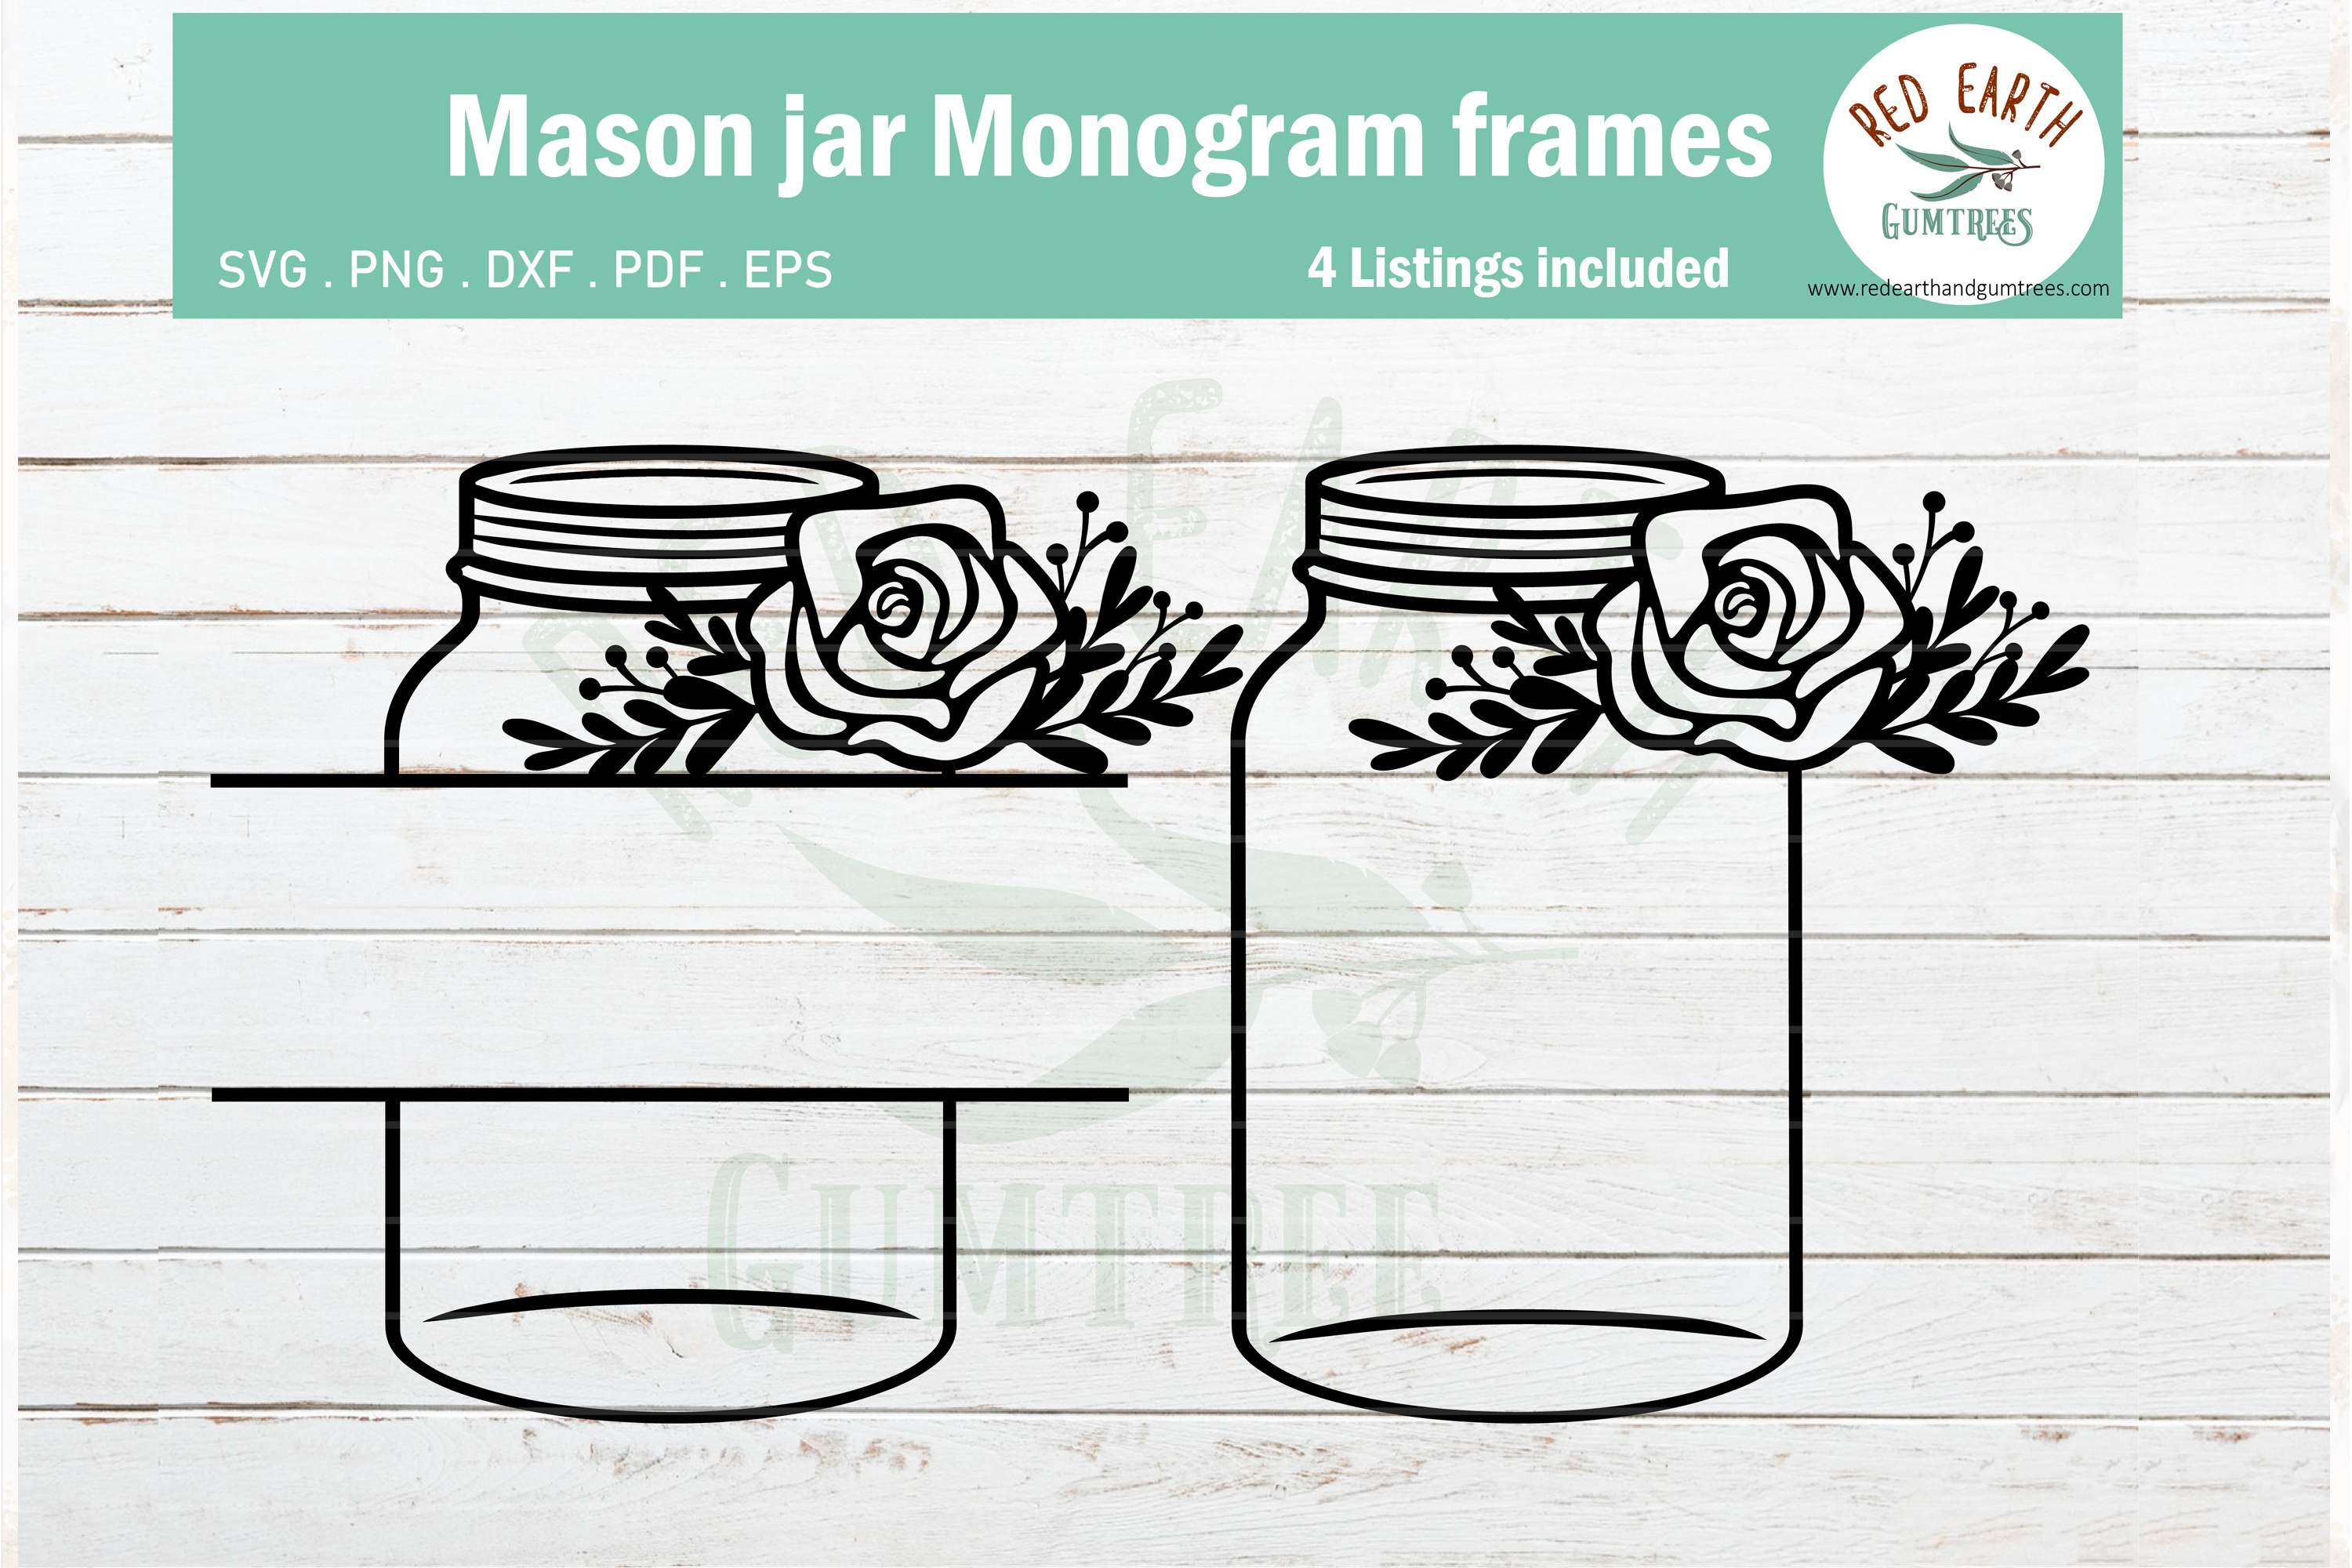 Floral mason jar, wedding mason jar monogram SVG,PNG,DXF,EPS example image 3